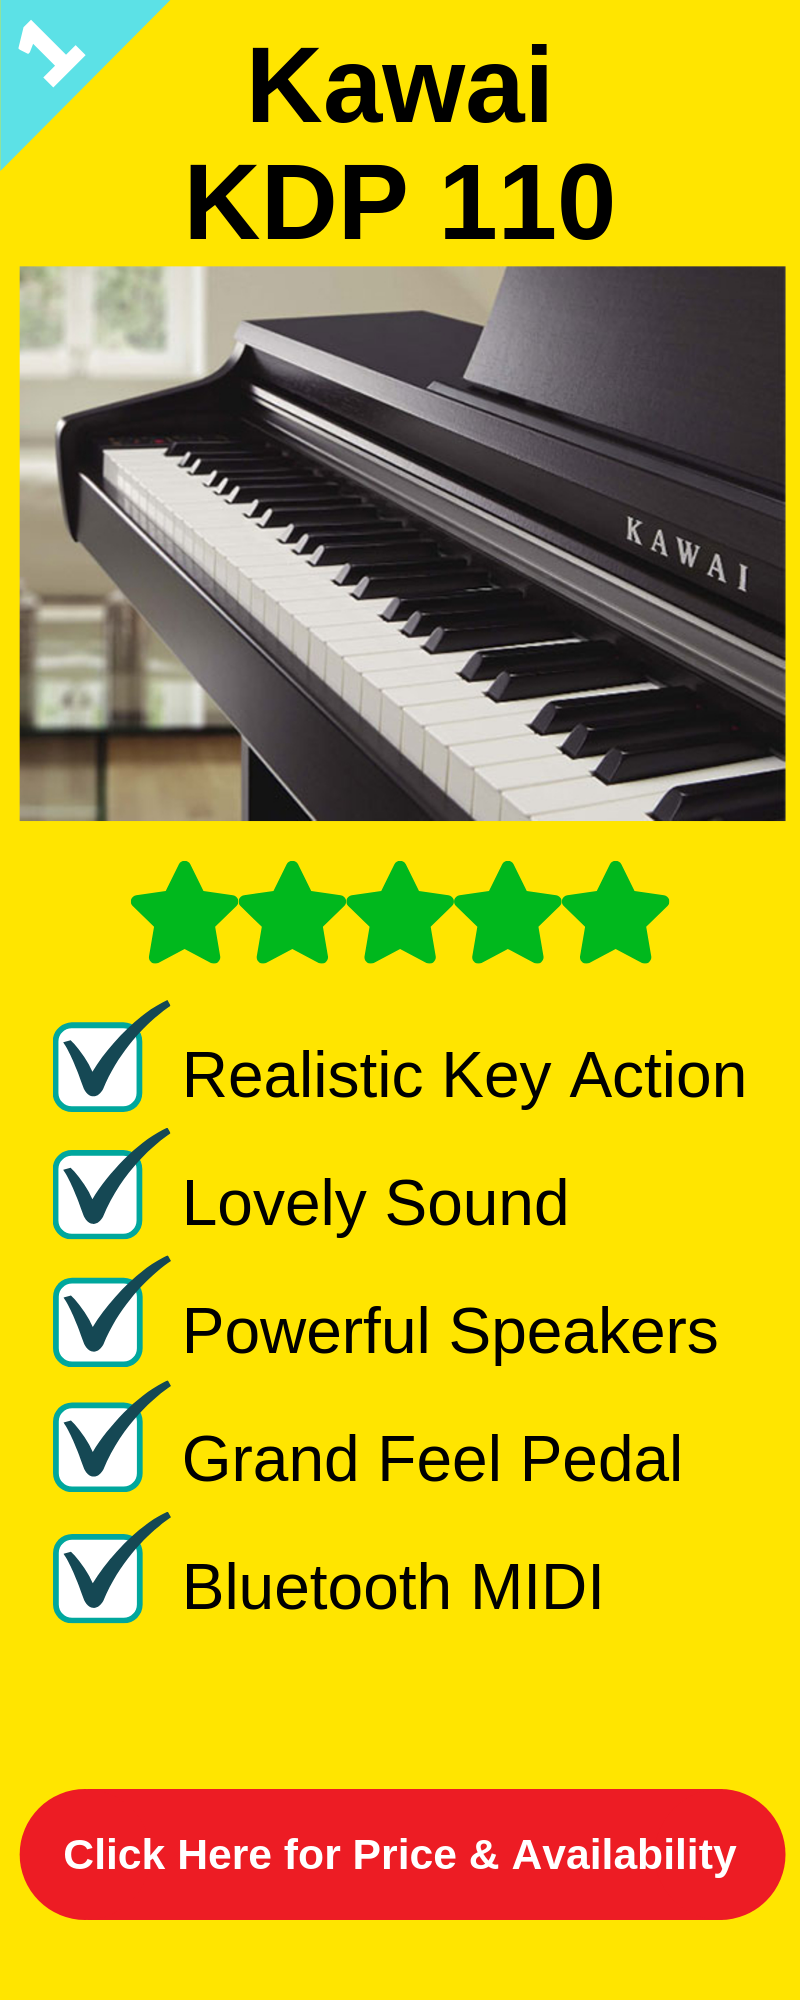 The best digital piano under 1000 is the Kawai KDP 110